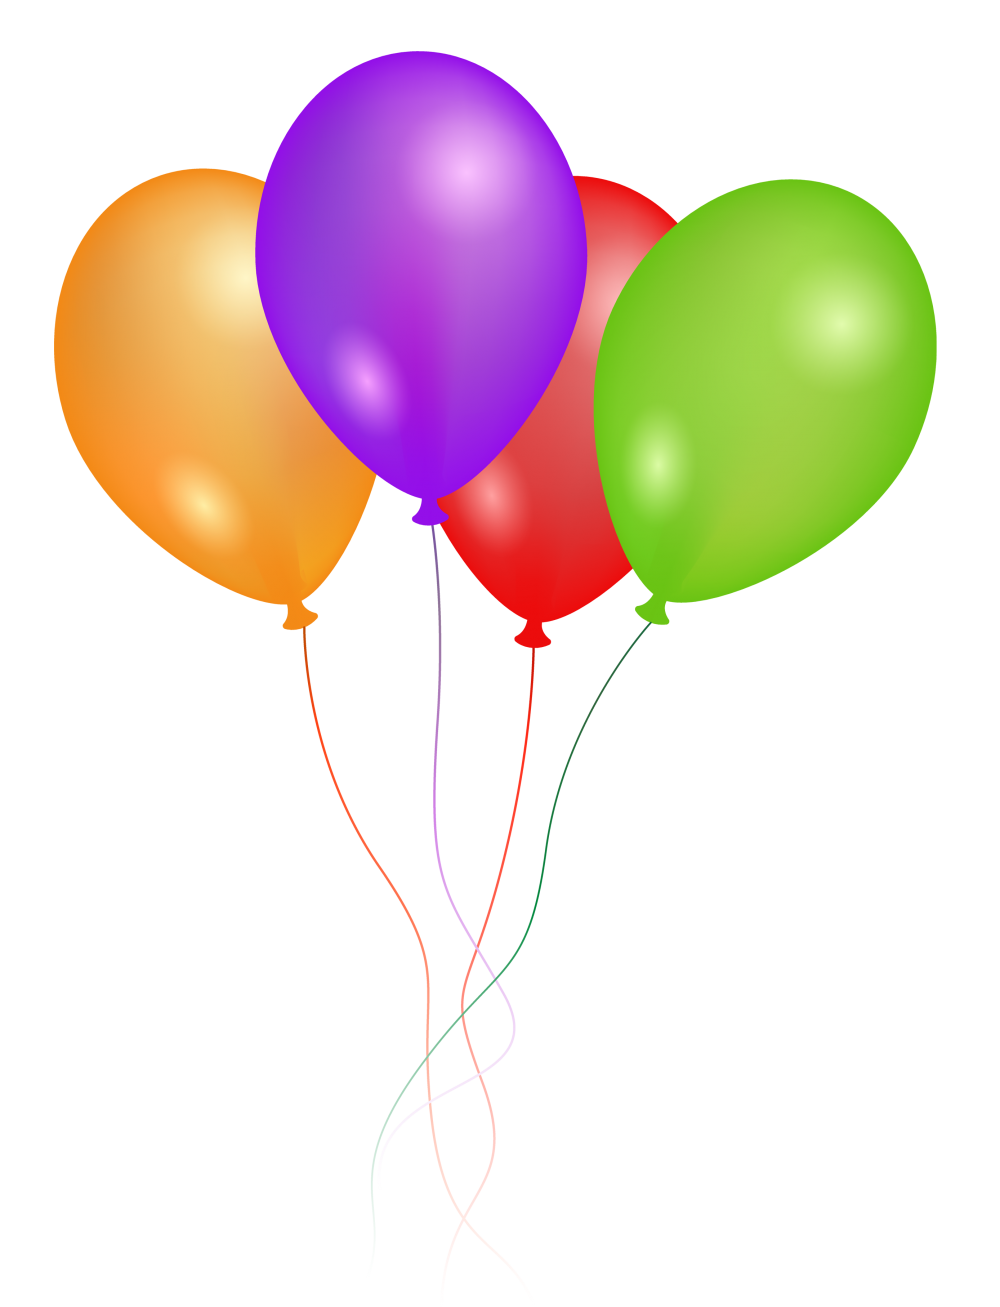 4 clipart balloon. Free png transparent background